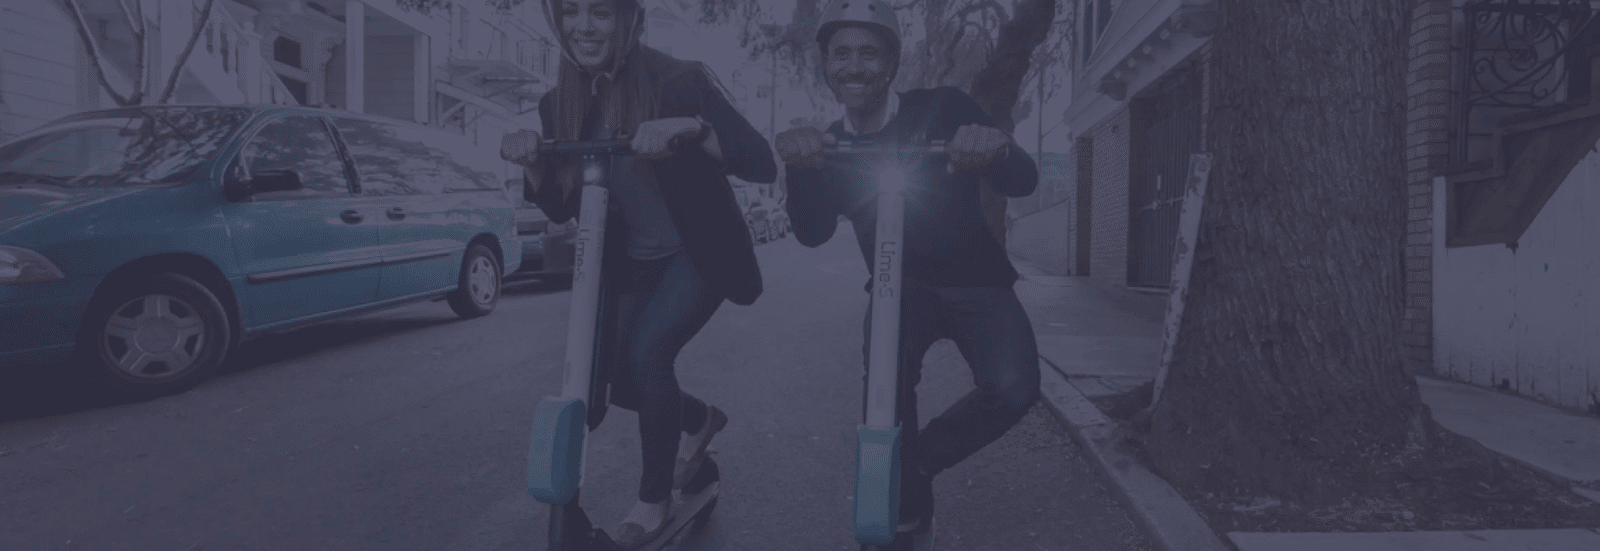 Lime Scooters: Everything You Need to Know Before Renting